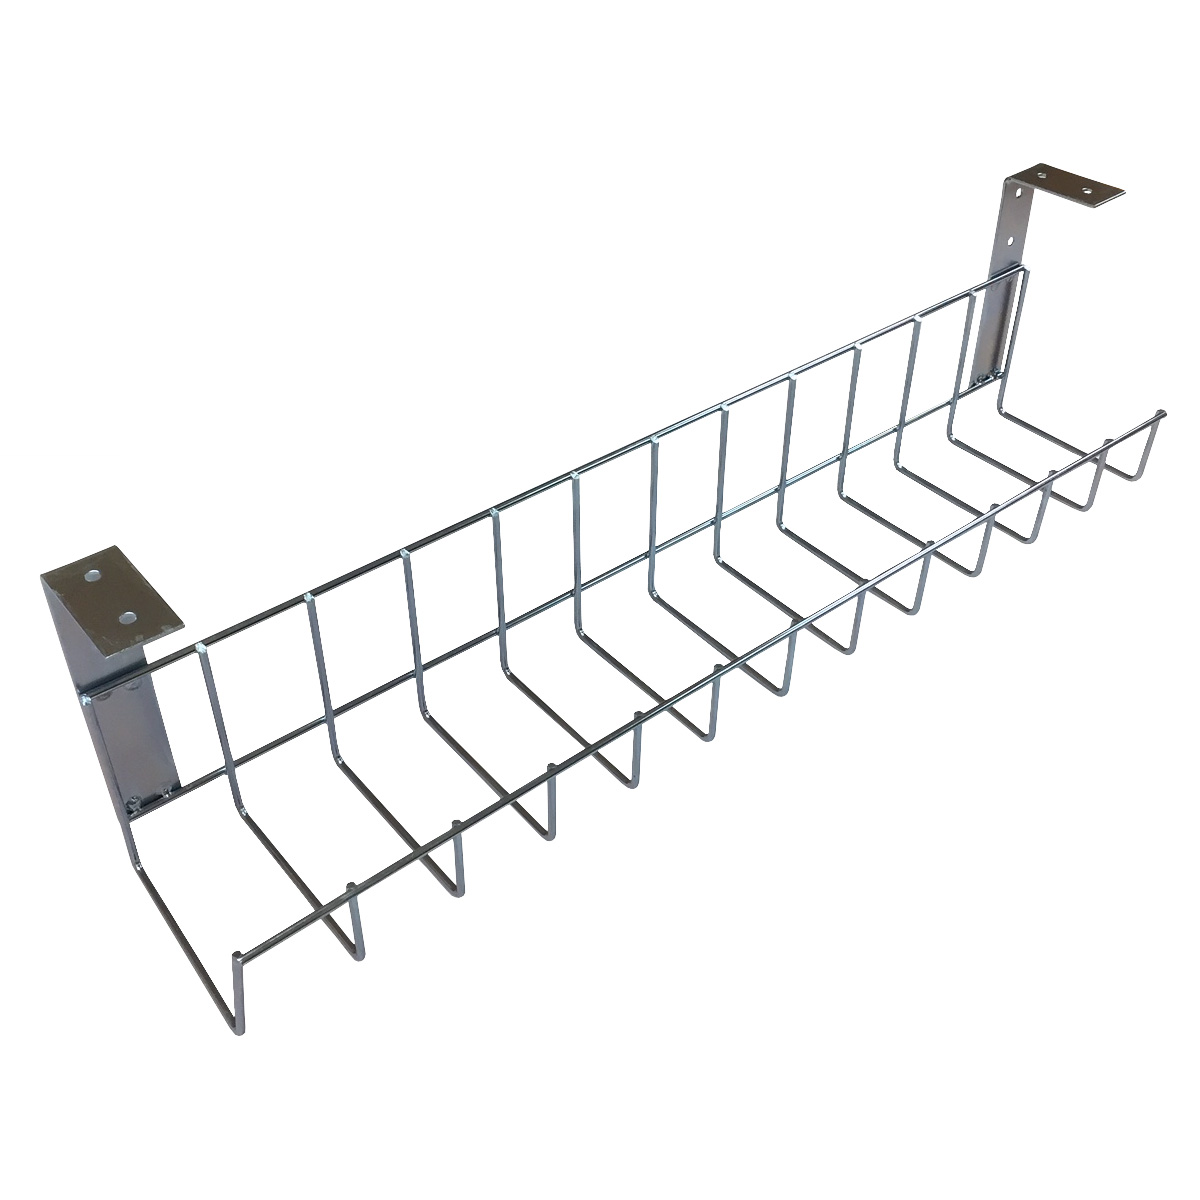 The Basket Cable Rack Wire Mesh System